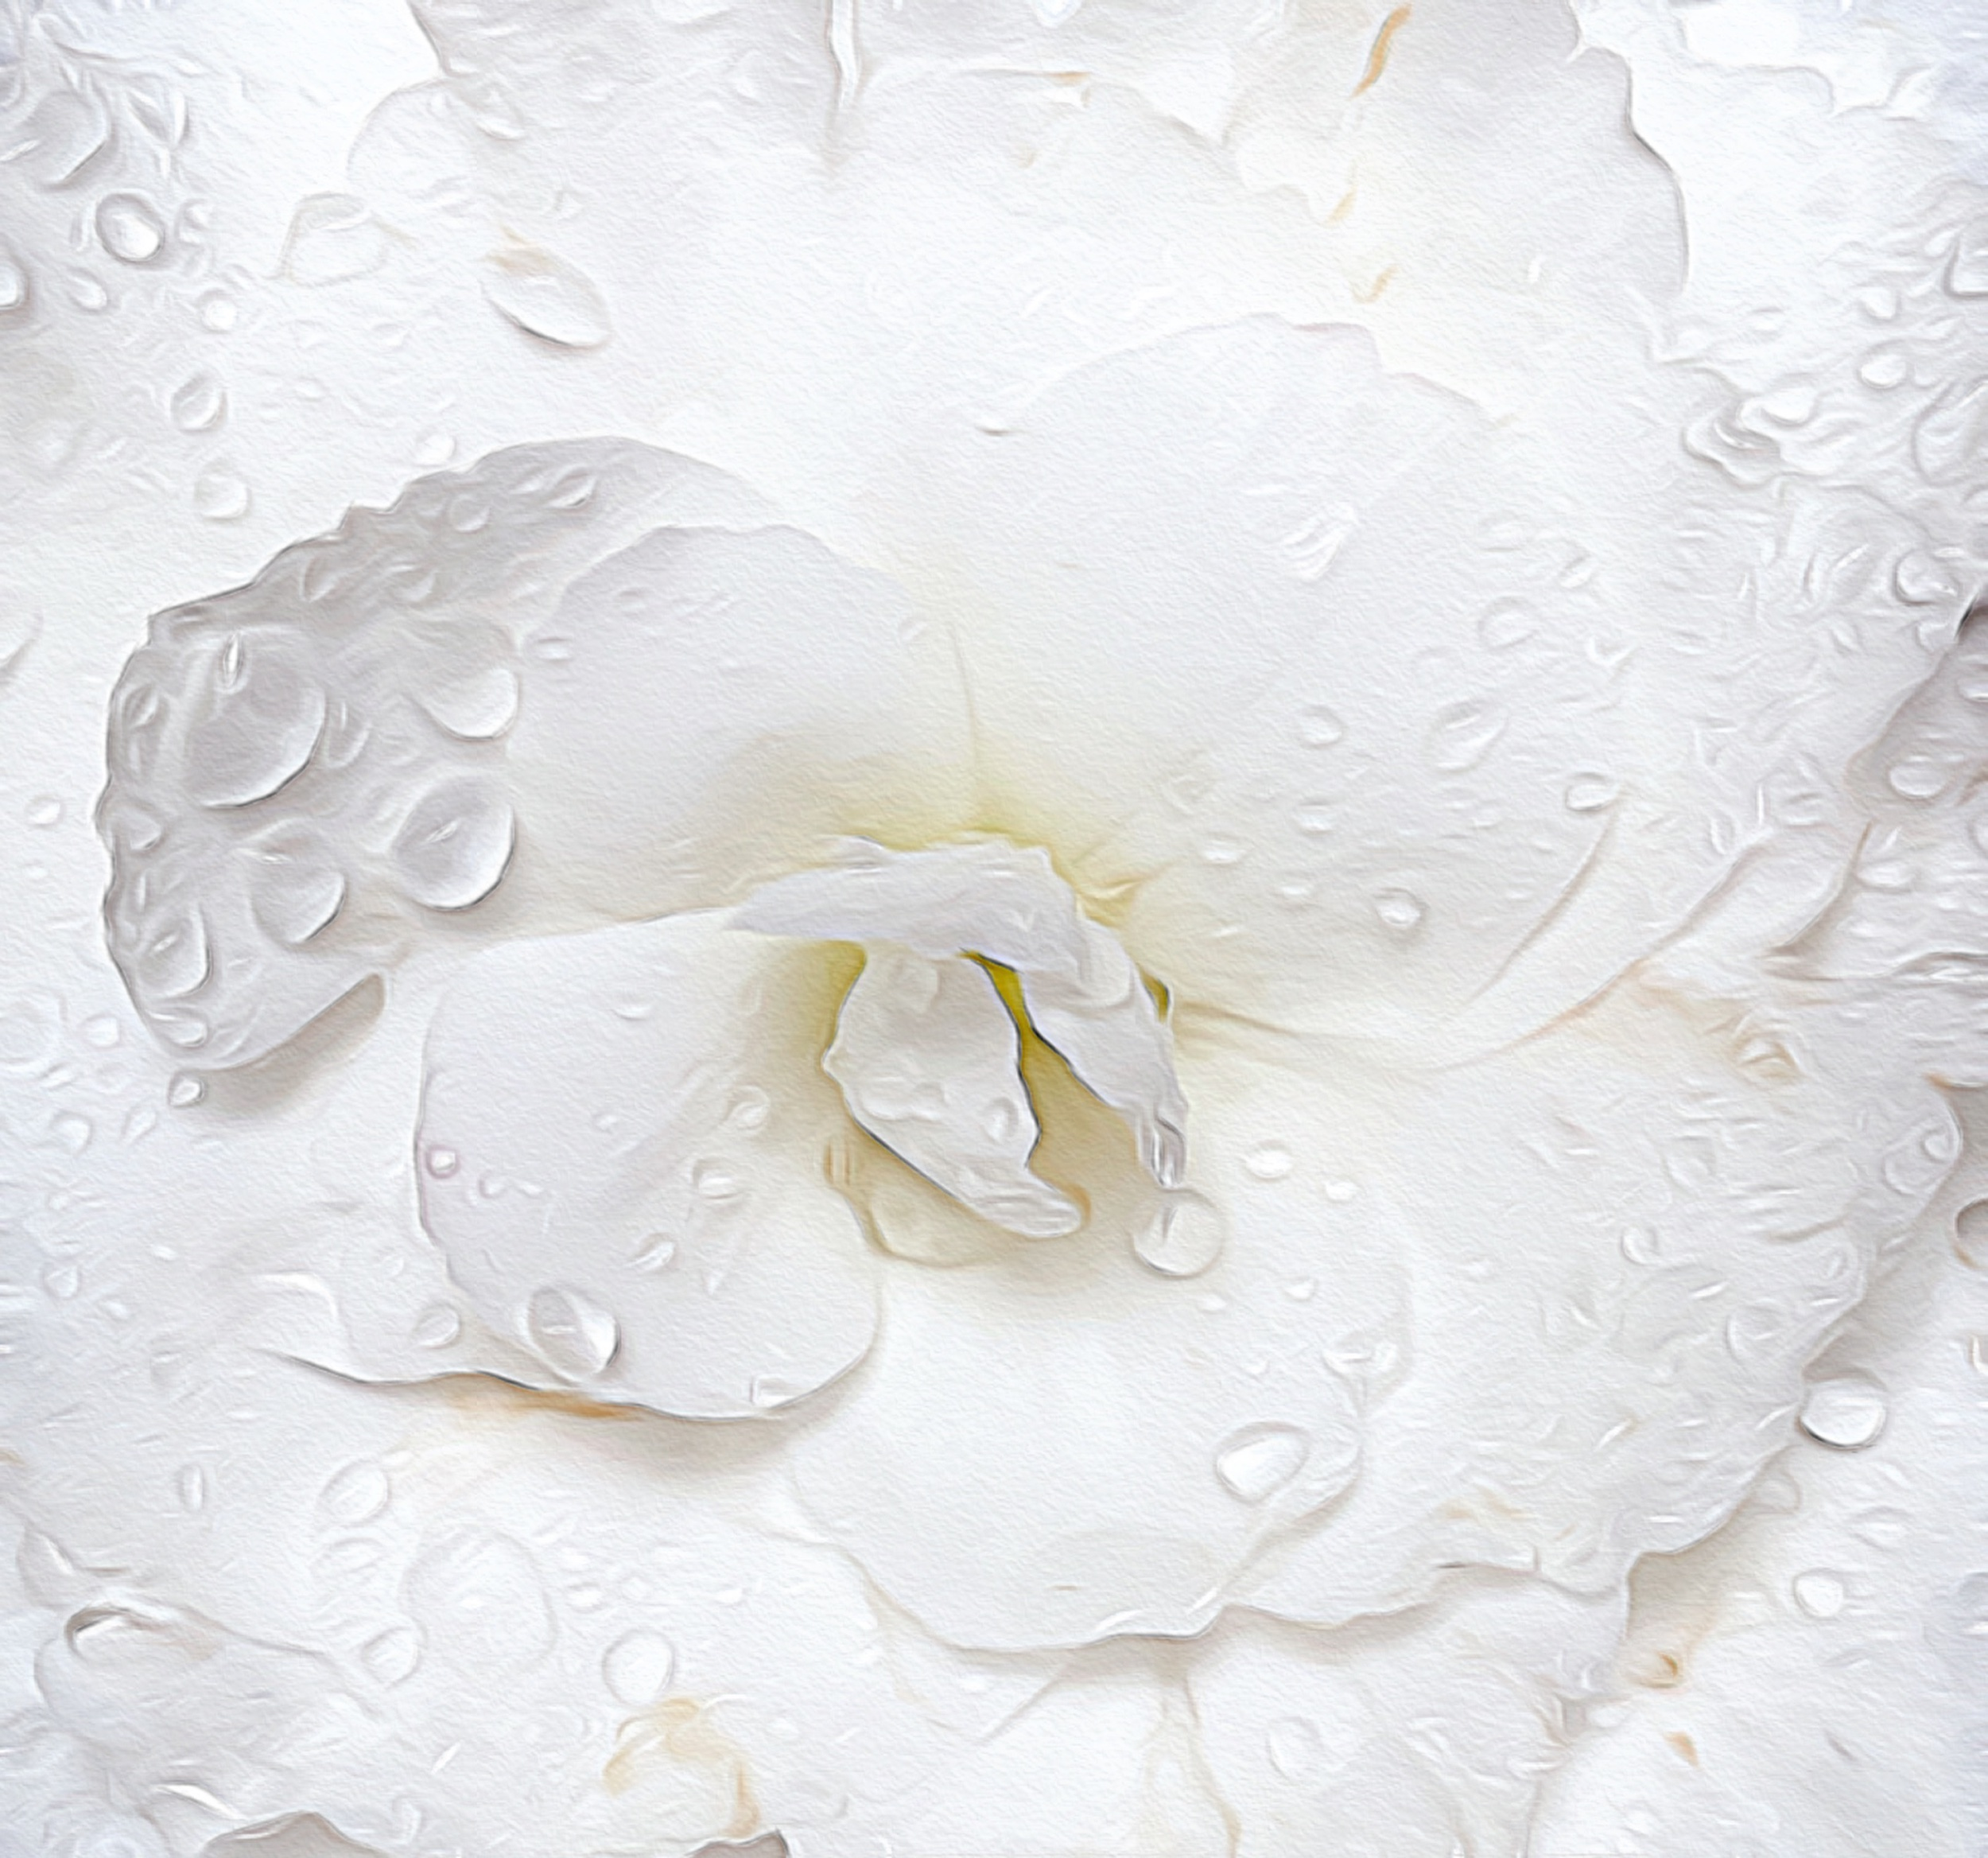 """July 22, 2019 - """"Whisper over me, Why don't you, begonia…"""" from the poem """"Praise to the End"""" by Theodore Roethke."""